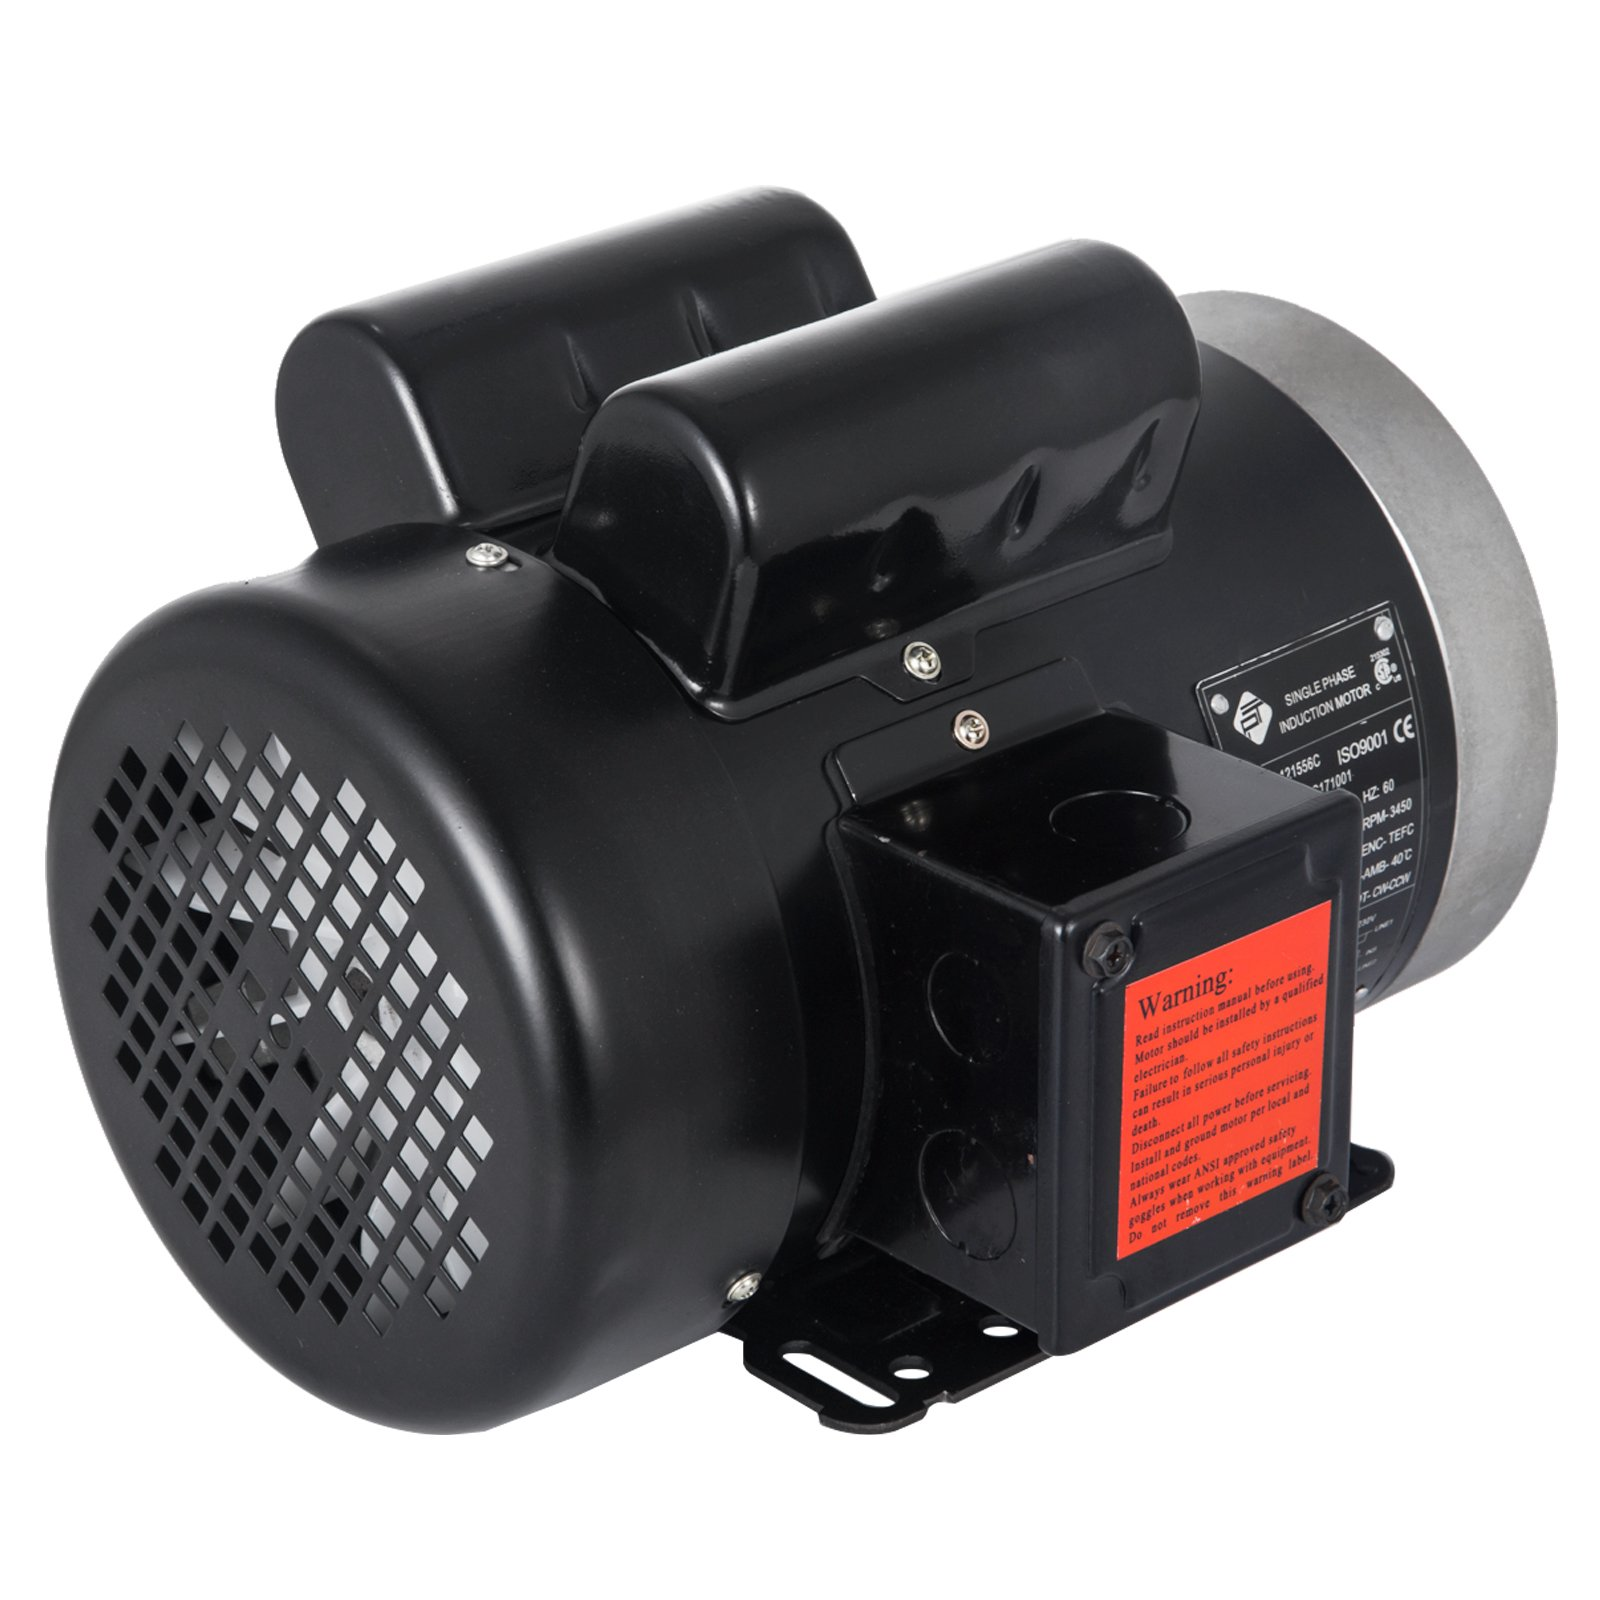 VEVOR 1.5 Hp Electric Motor with Flange Rated Speed 3450 RPM Single Phase Motor AC 115/230V Air Compressor Motor Suit for Agricultural Machinery and General Equipment